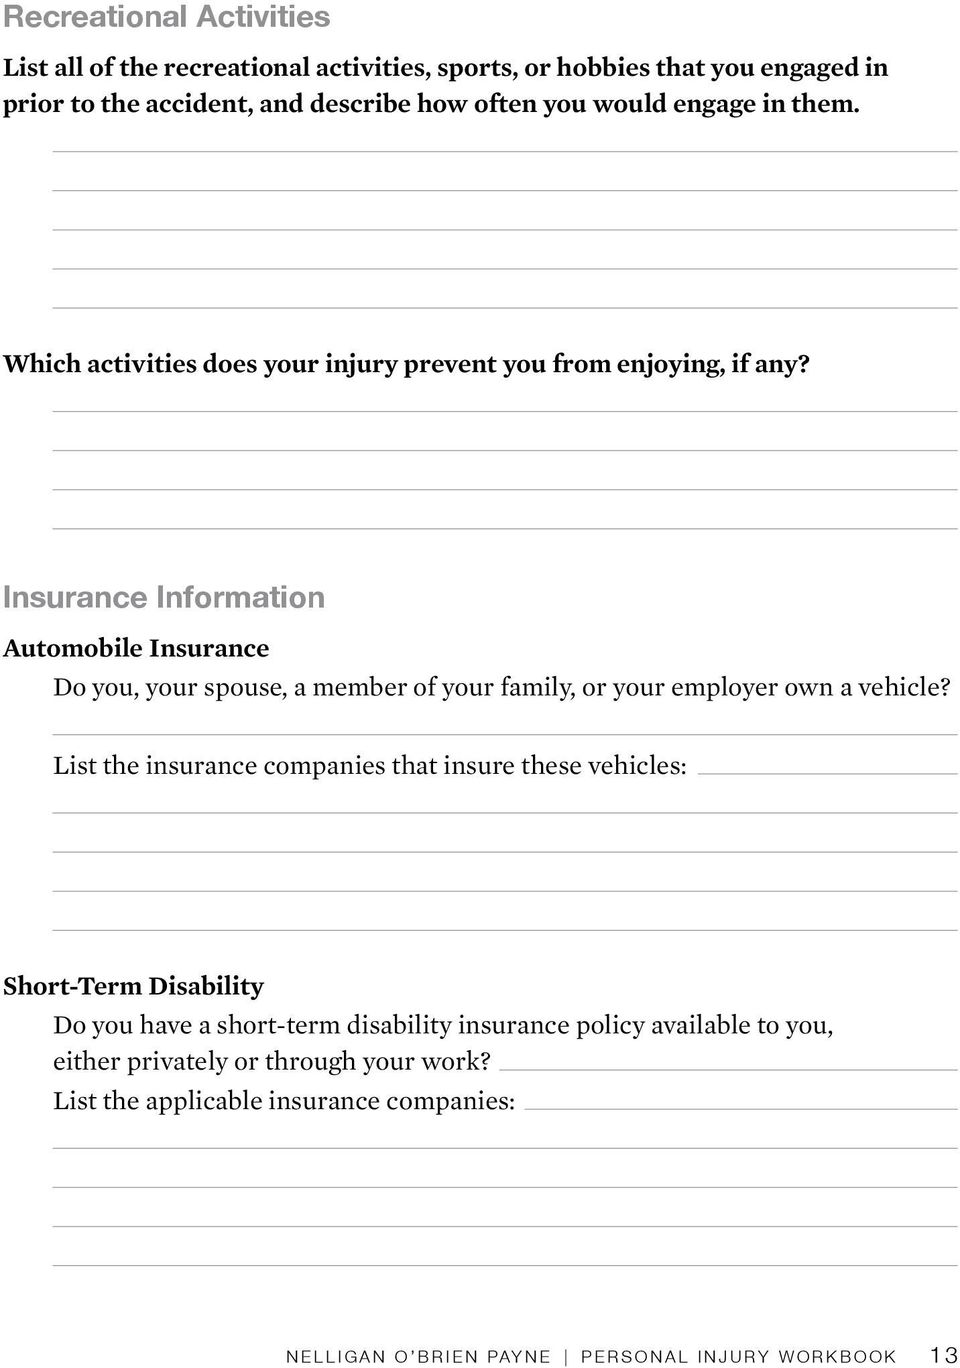 Insurance Information Automobile Insurance Do you, your spouse, a member of your family, or your employer own a vehicle?